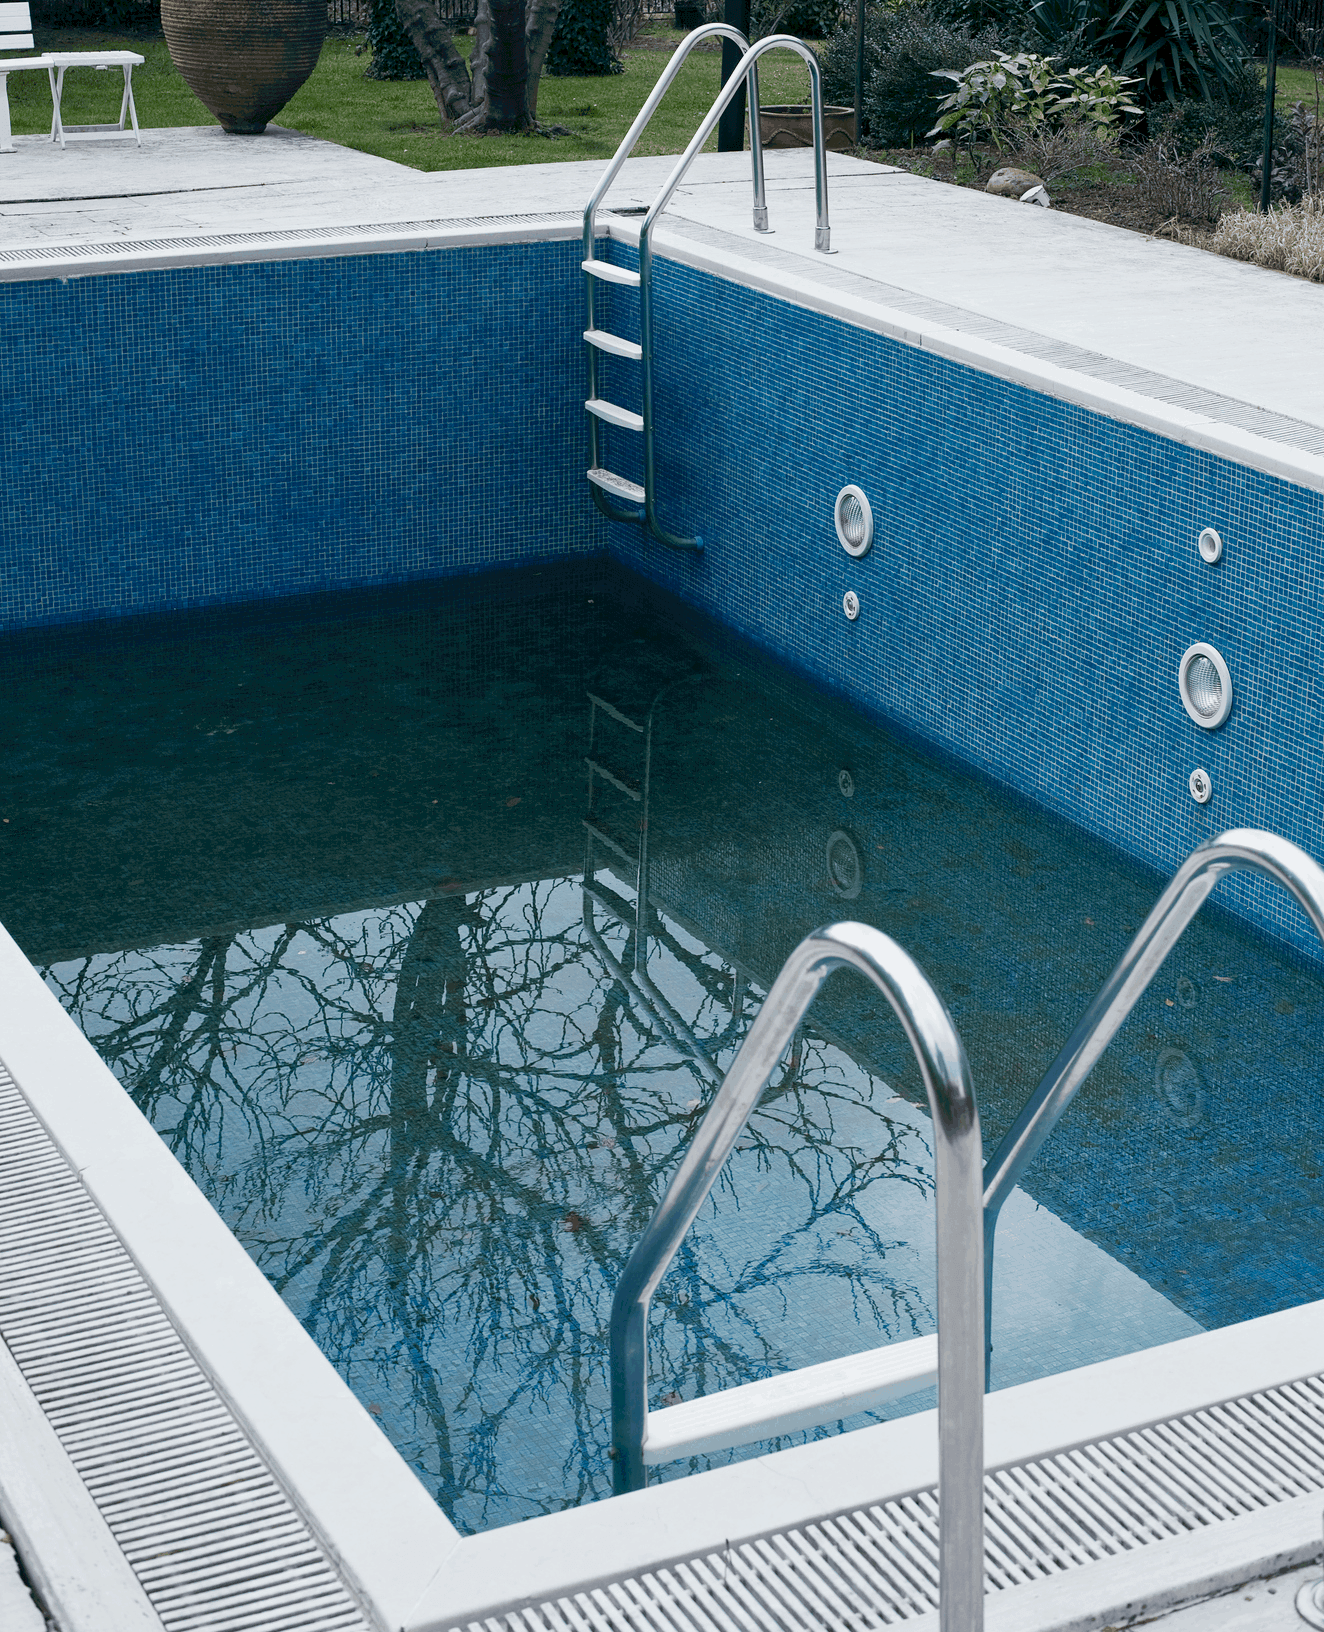 Pool leak detection Portsea